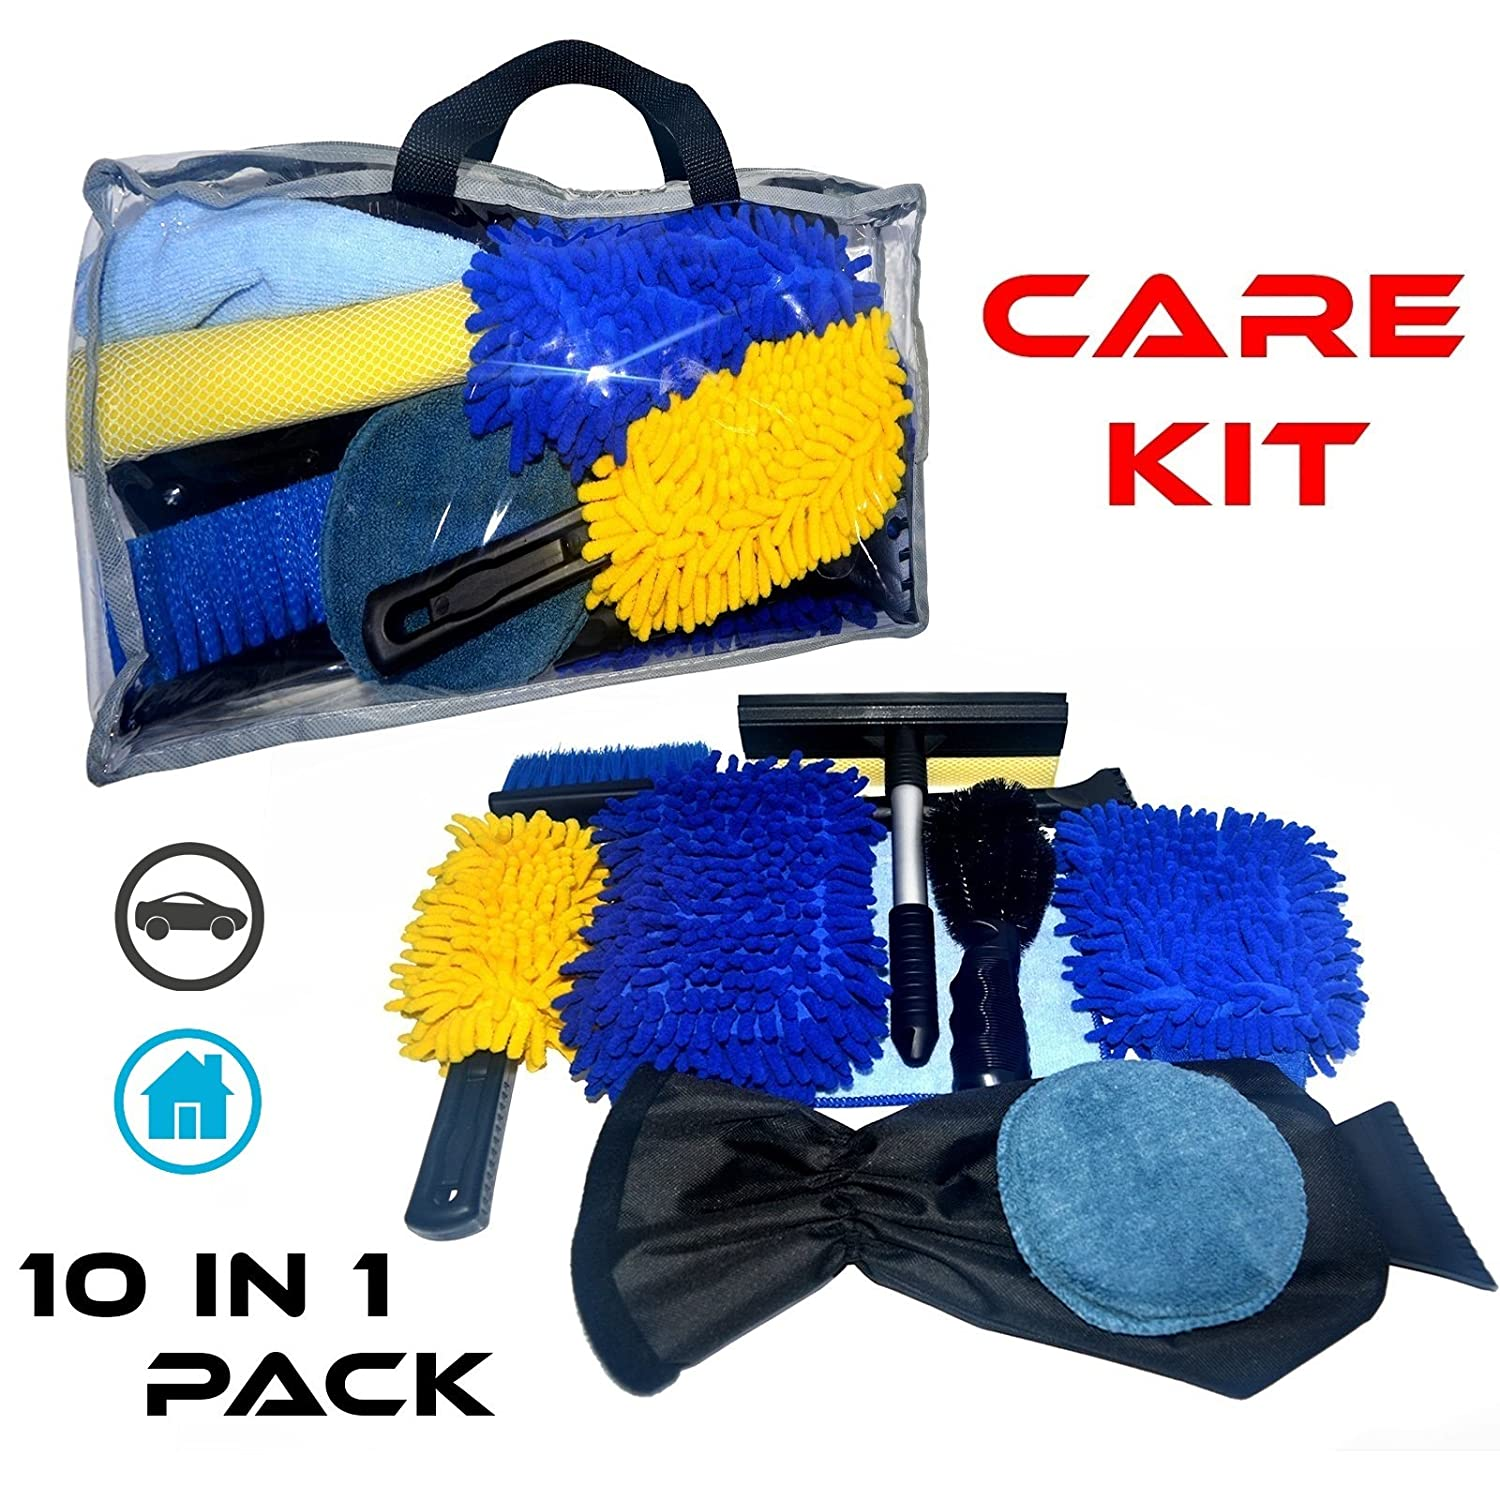 10 Piece Essential Multi-Purpose Car - Home - Office Care & Cleaning Kit (Squeegee, Duster, Brush, Mitt, Scraper, Sponge Tools) Auris Global Ltd. (myAuris.uk)